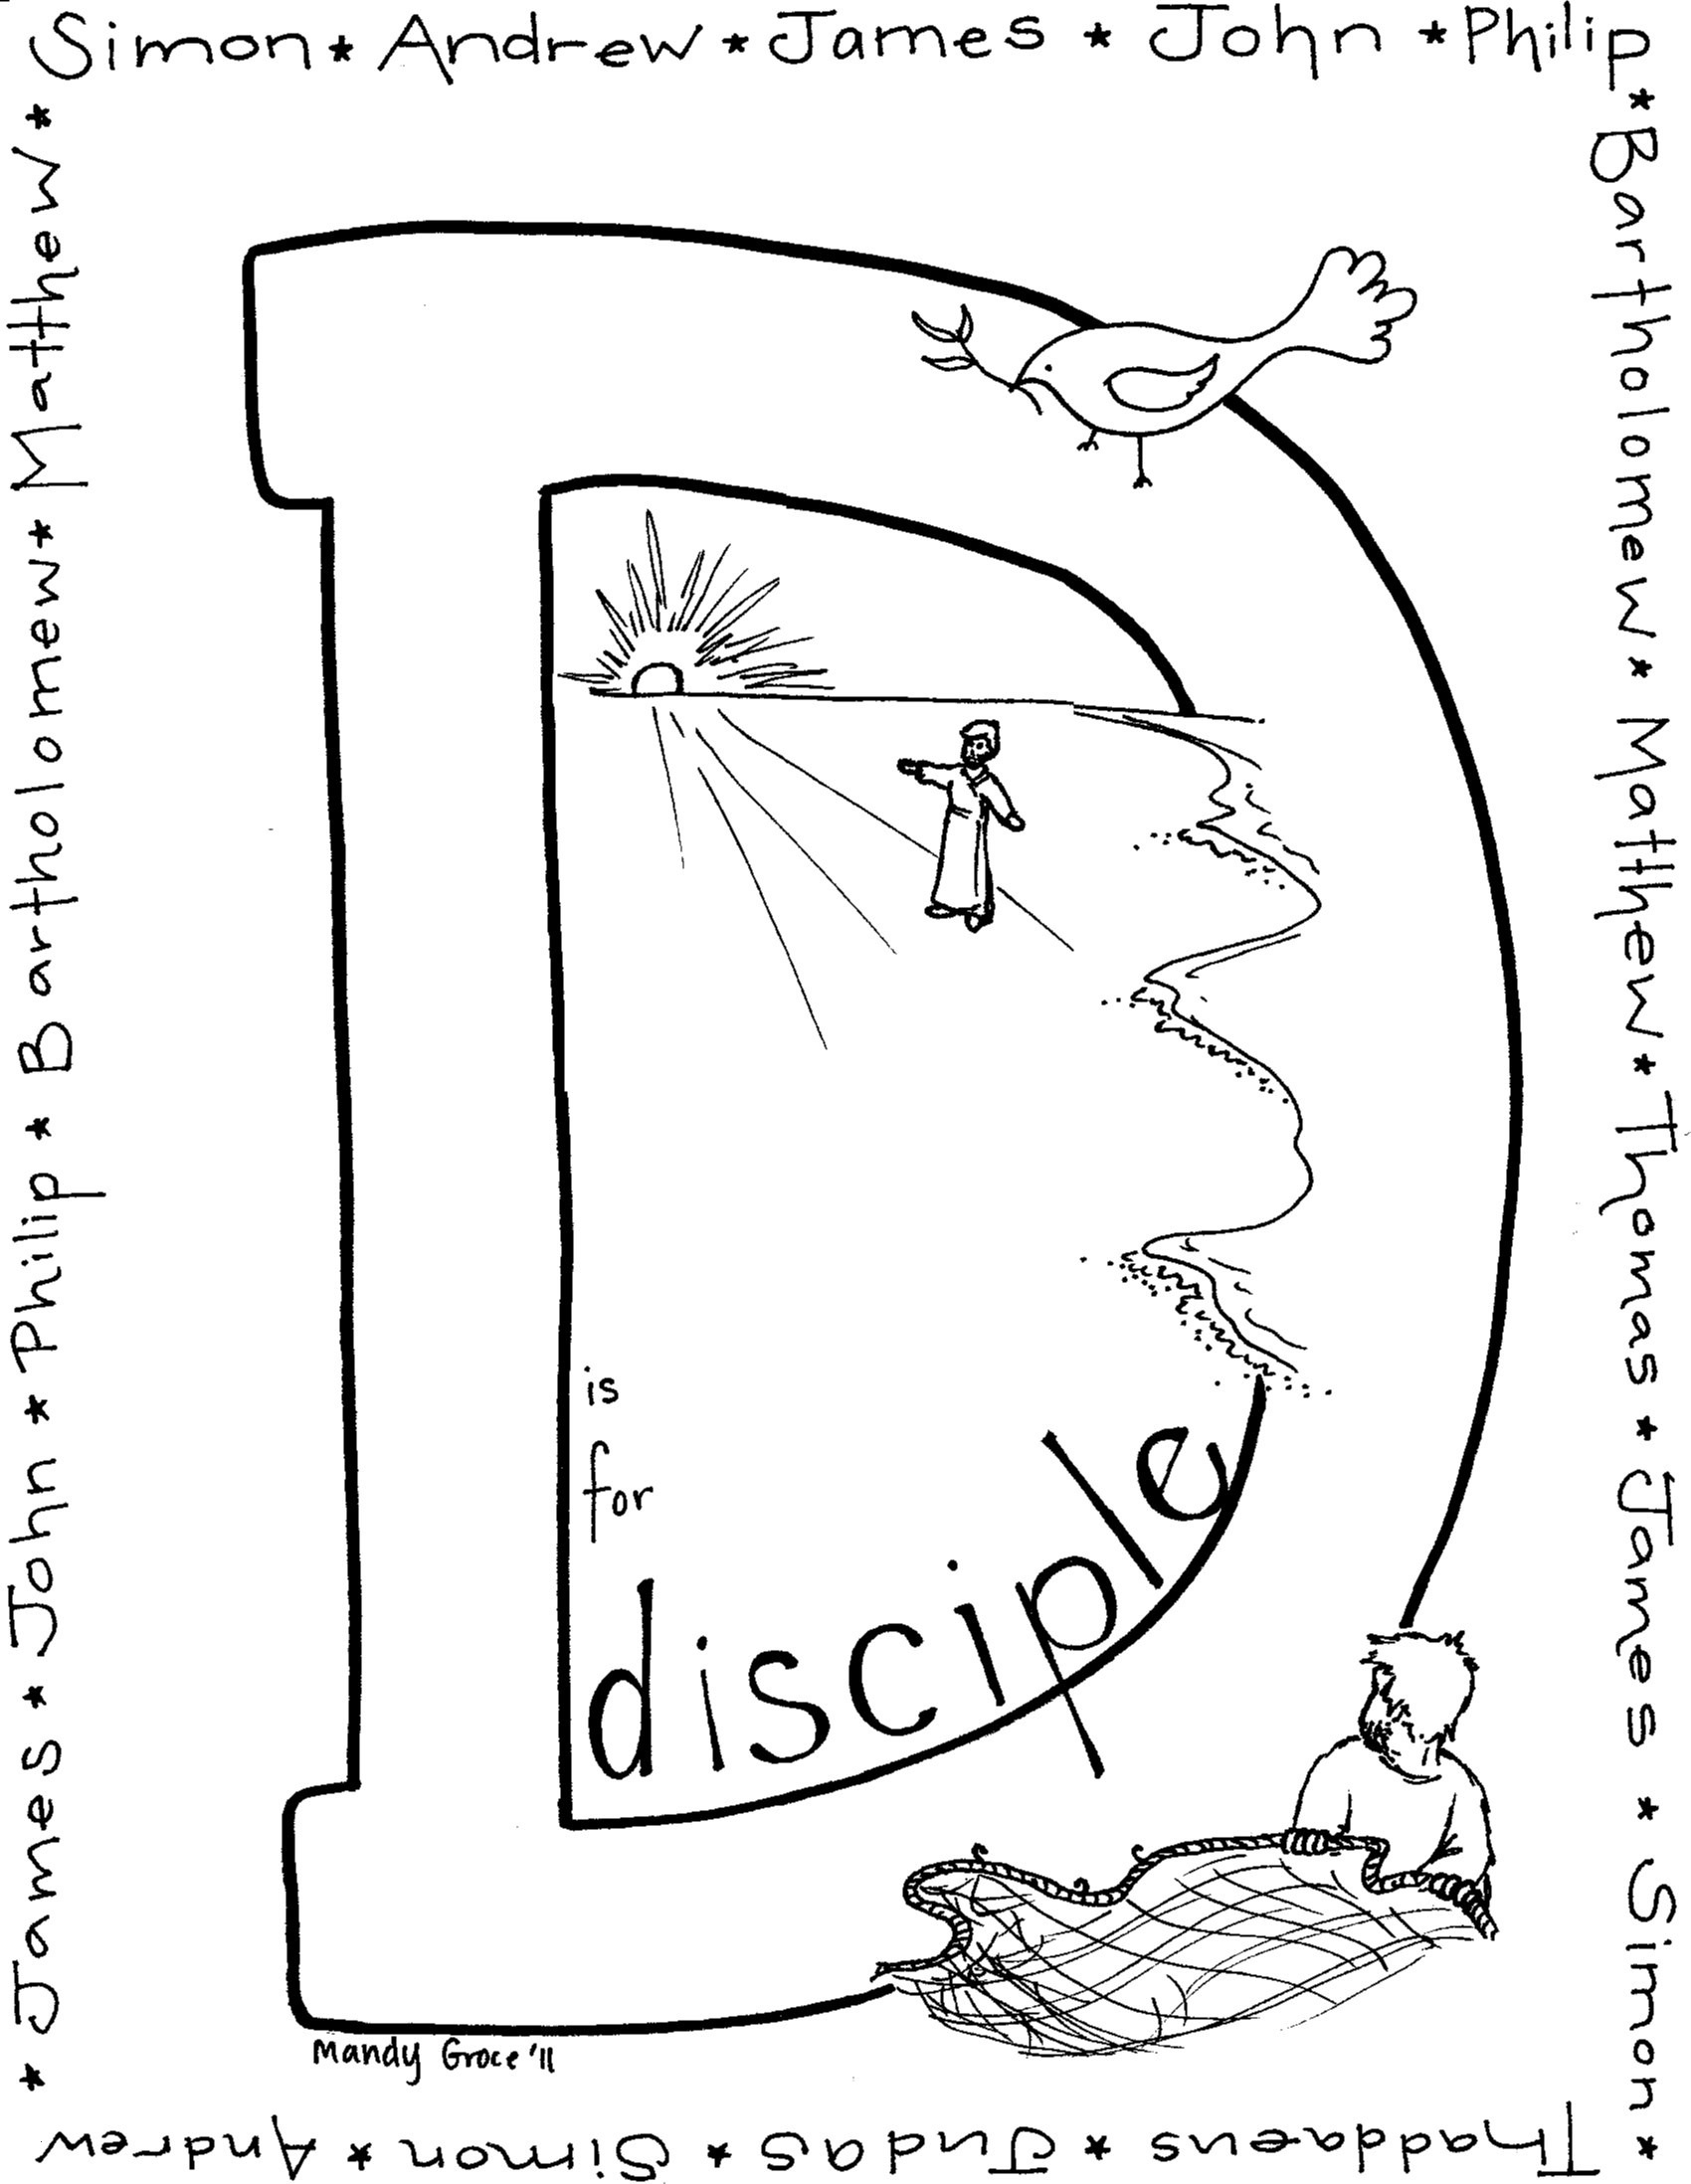 Disciples Coloring Pages Printable  Collection 6m - To print for your project